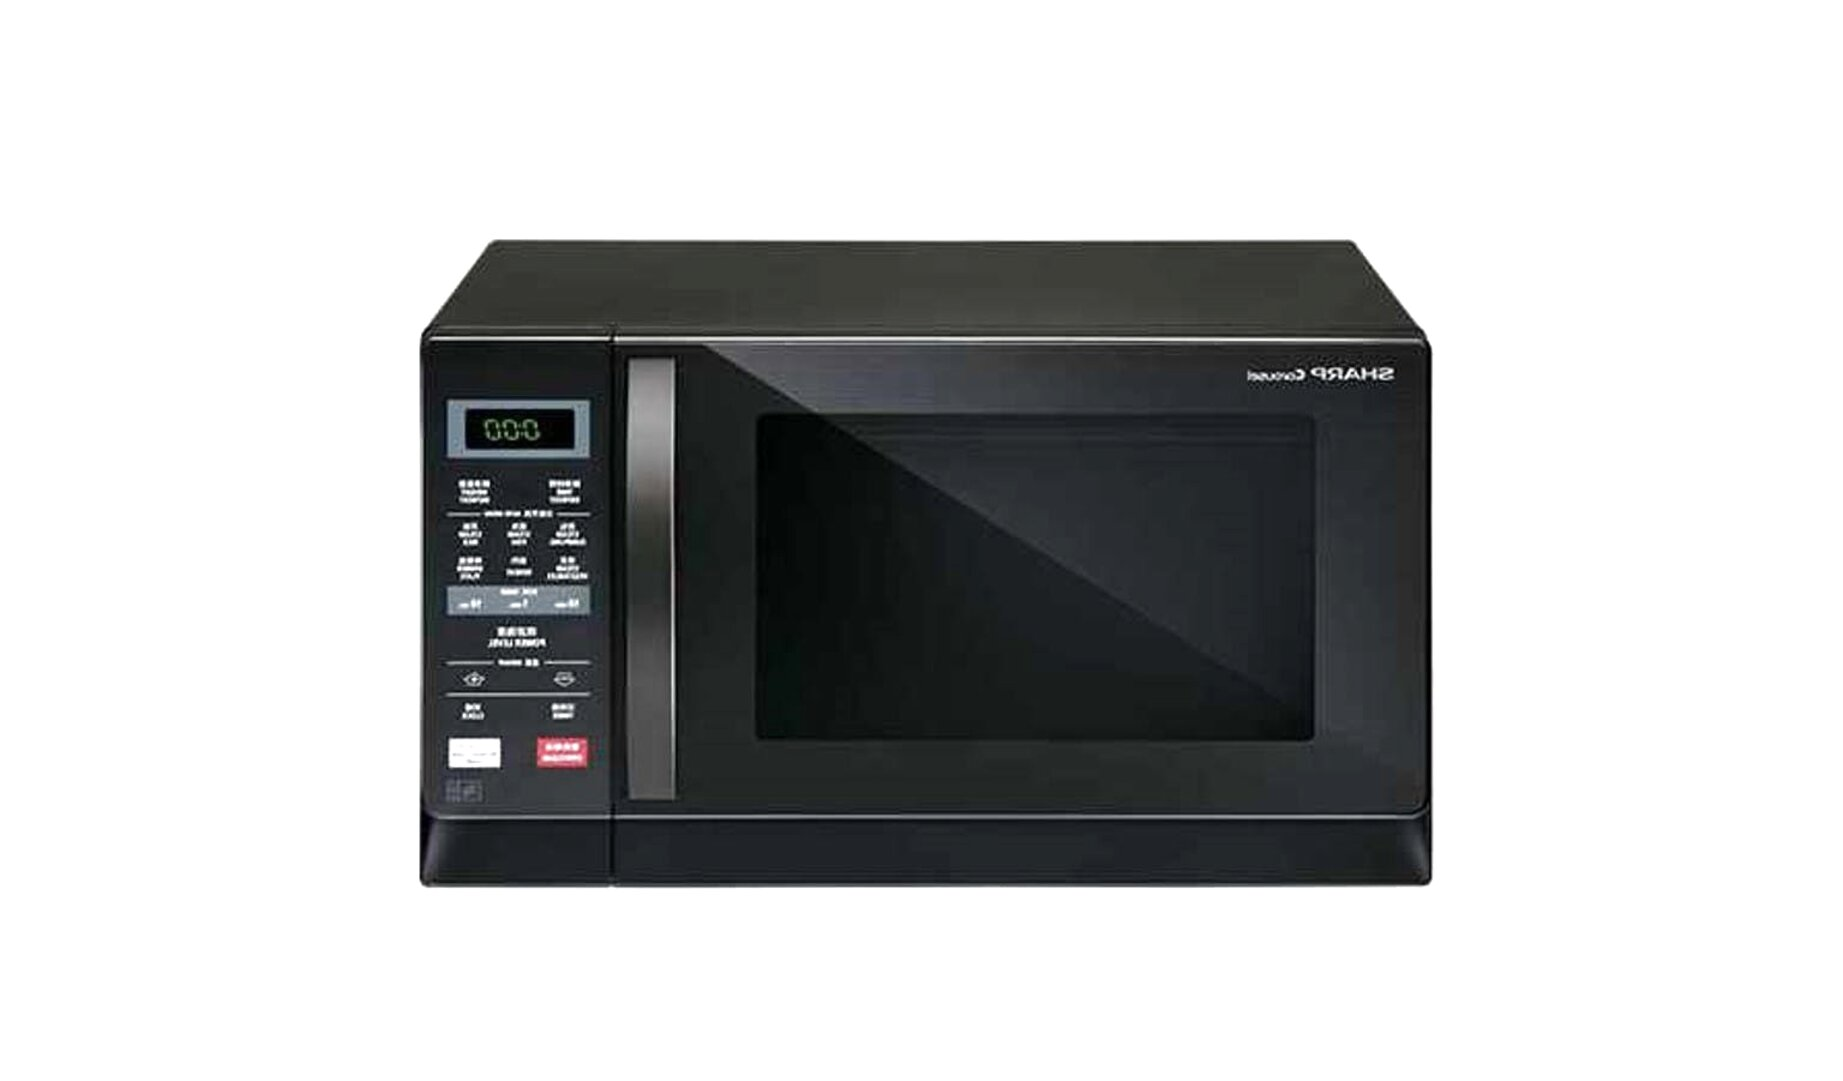 Sharp Microwave Oven For Sale Only 2 Left At 70